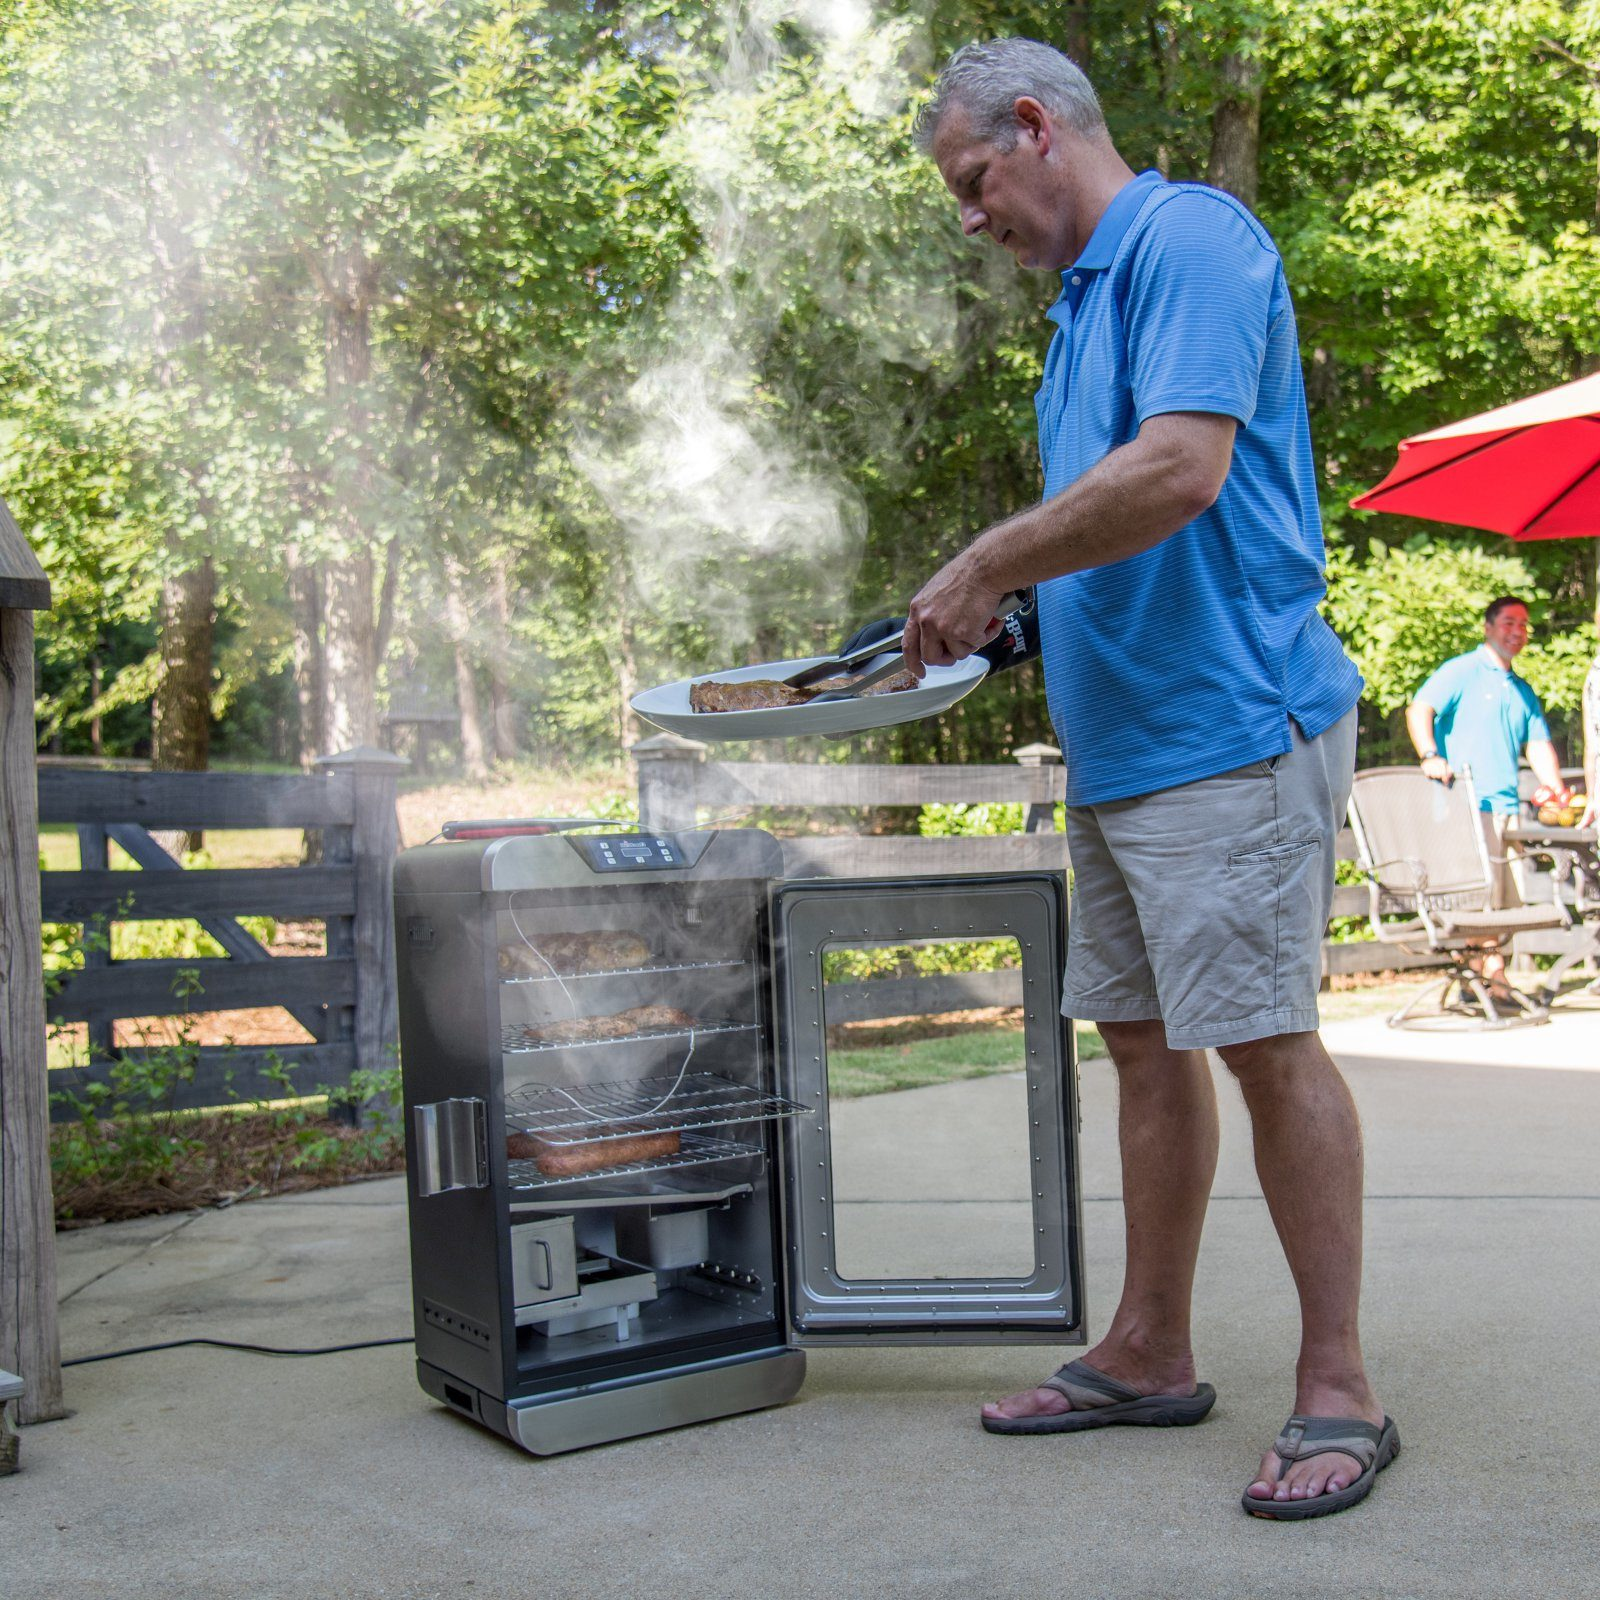 David cooking with his new electric smoker grill.